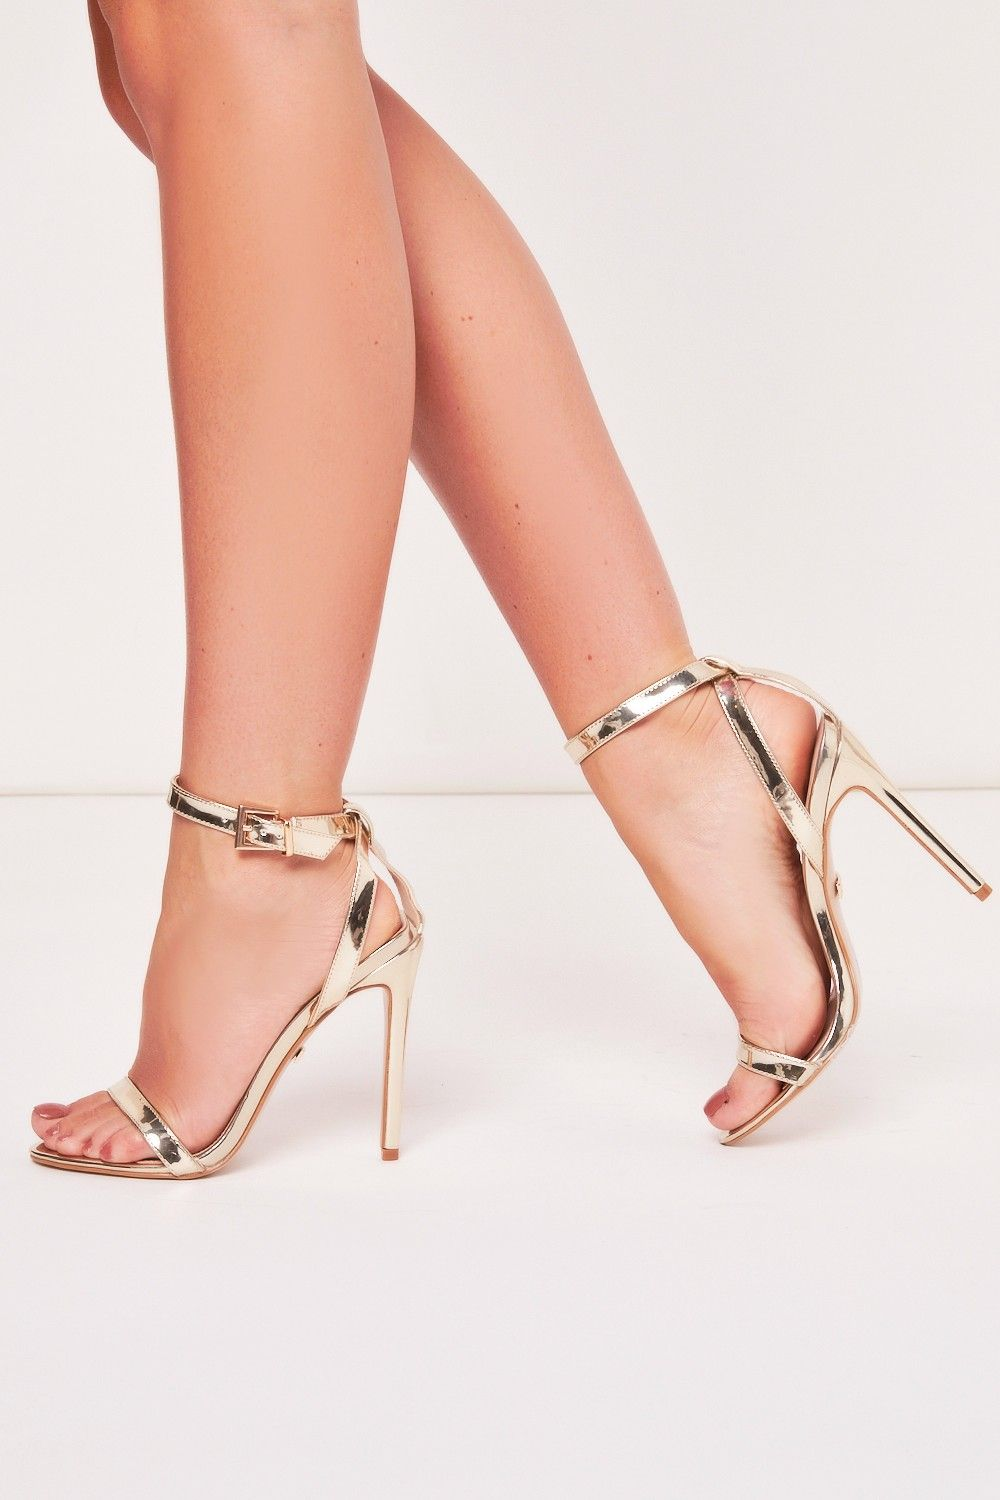 d7a229b7131 Aliyah Gold Barely There Heels in 2019 | high heels | Heels, Gold ...